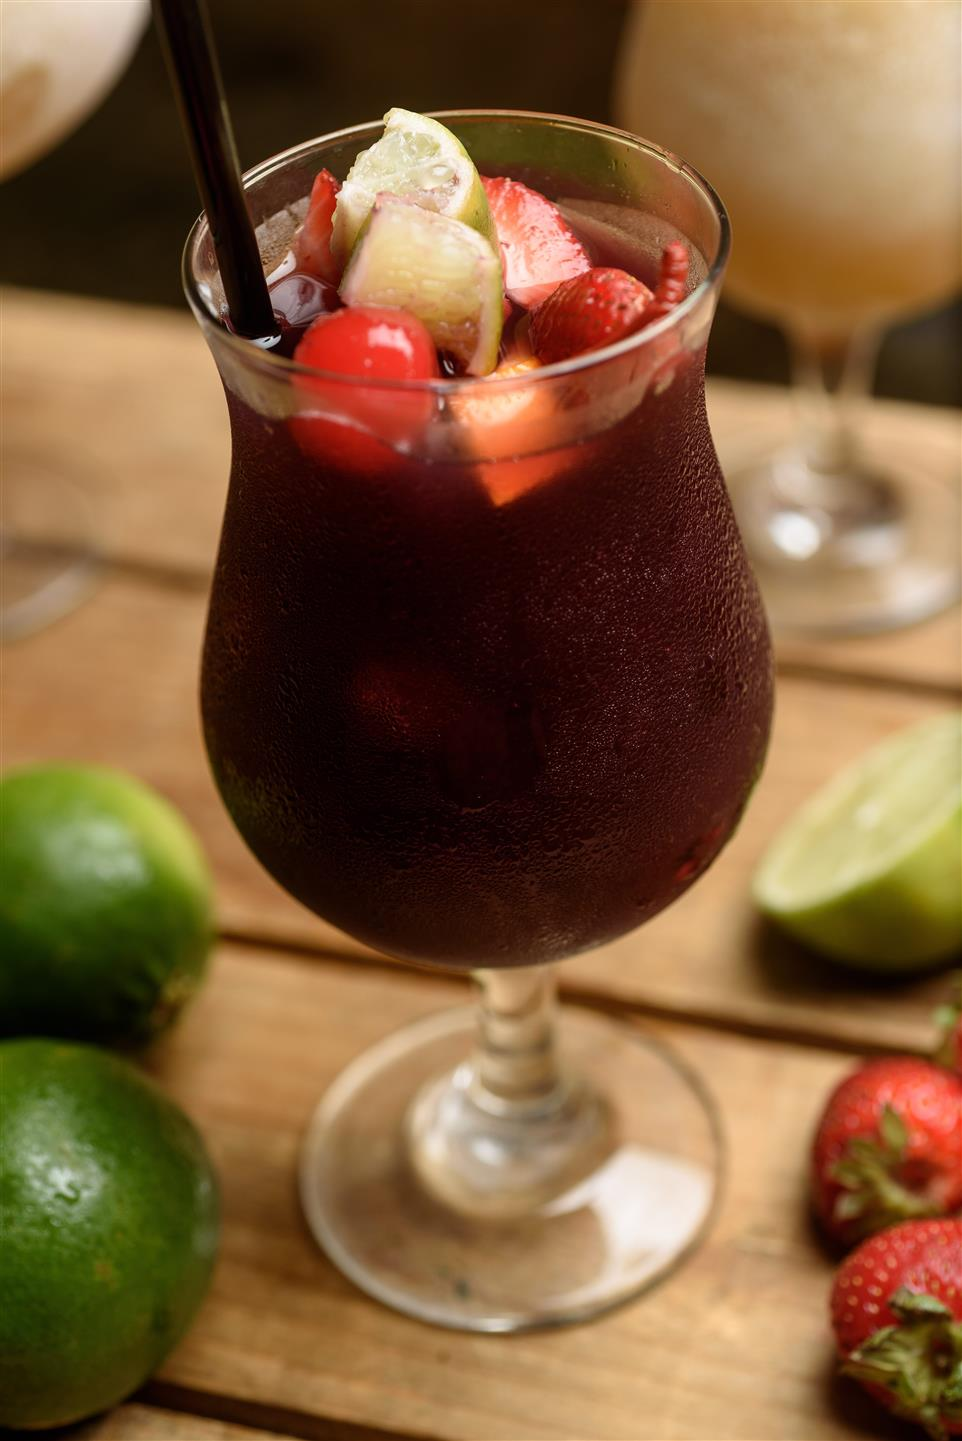 Sangria in glass with cherrys, apples, and other assorted fruit